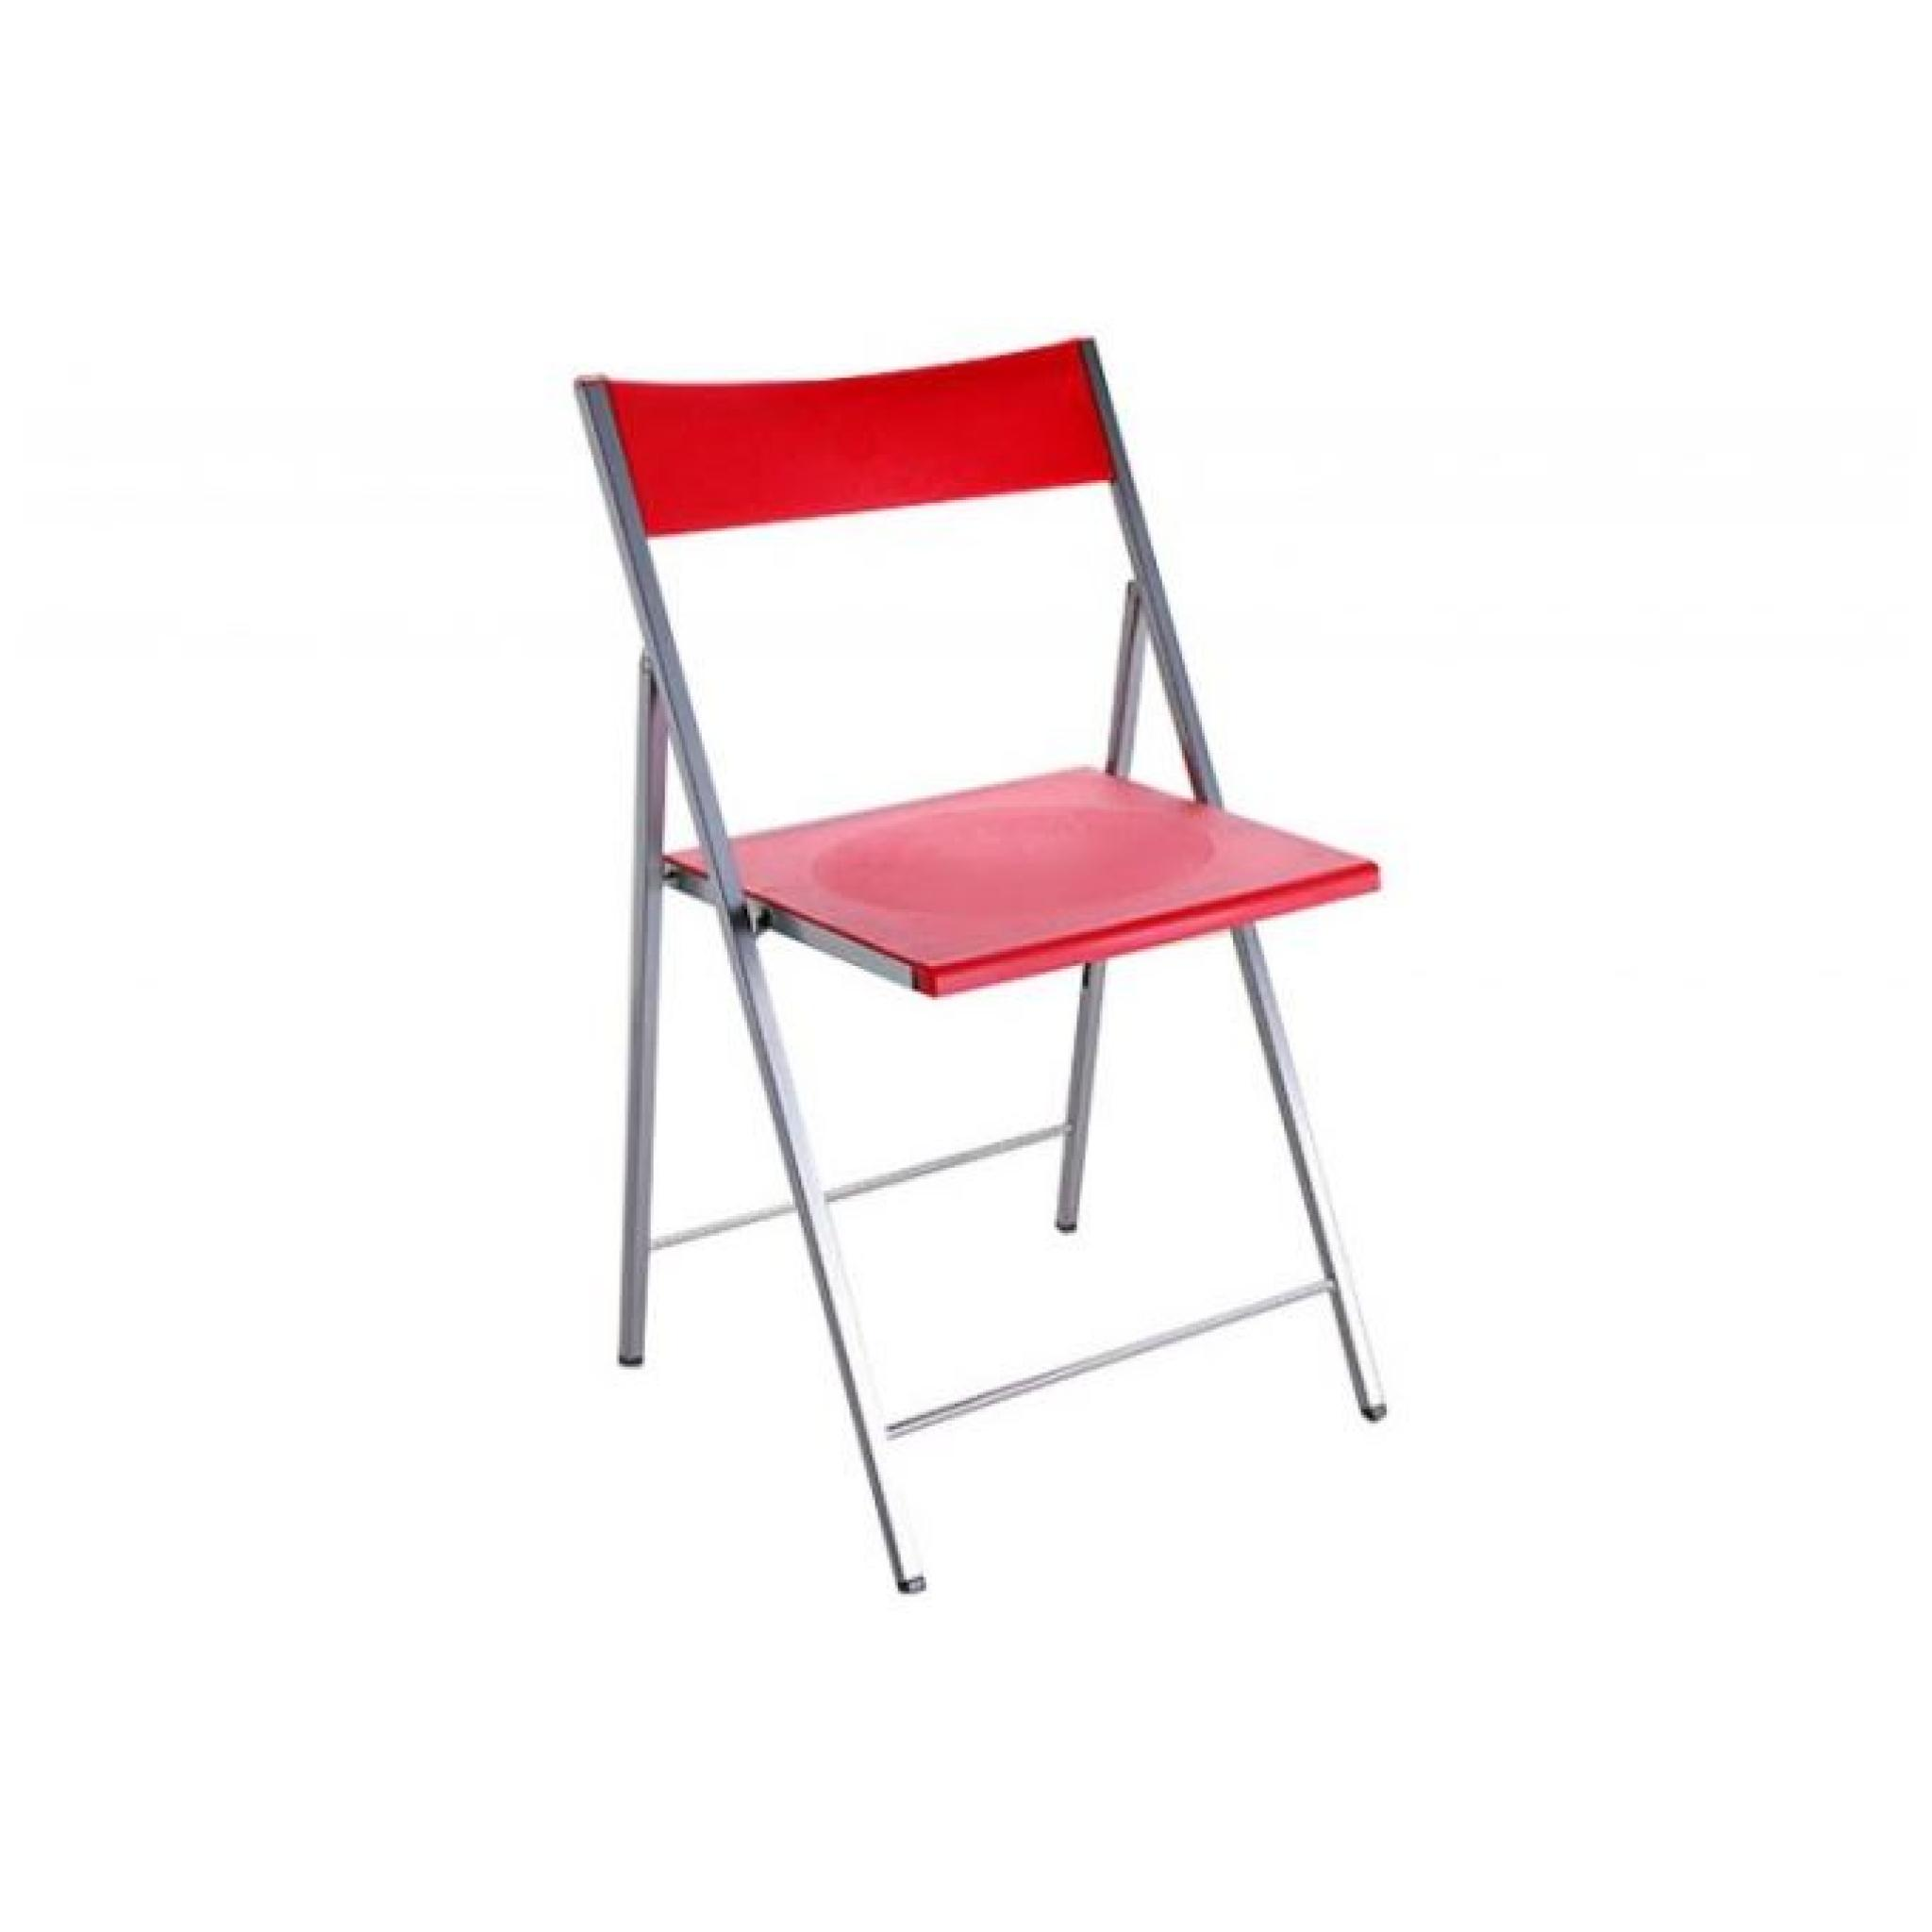 Chaise pliante rouge bilbao achat vente chaise salle a for Chaise rouge